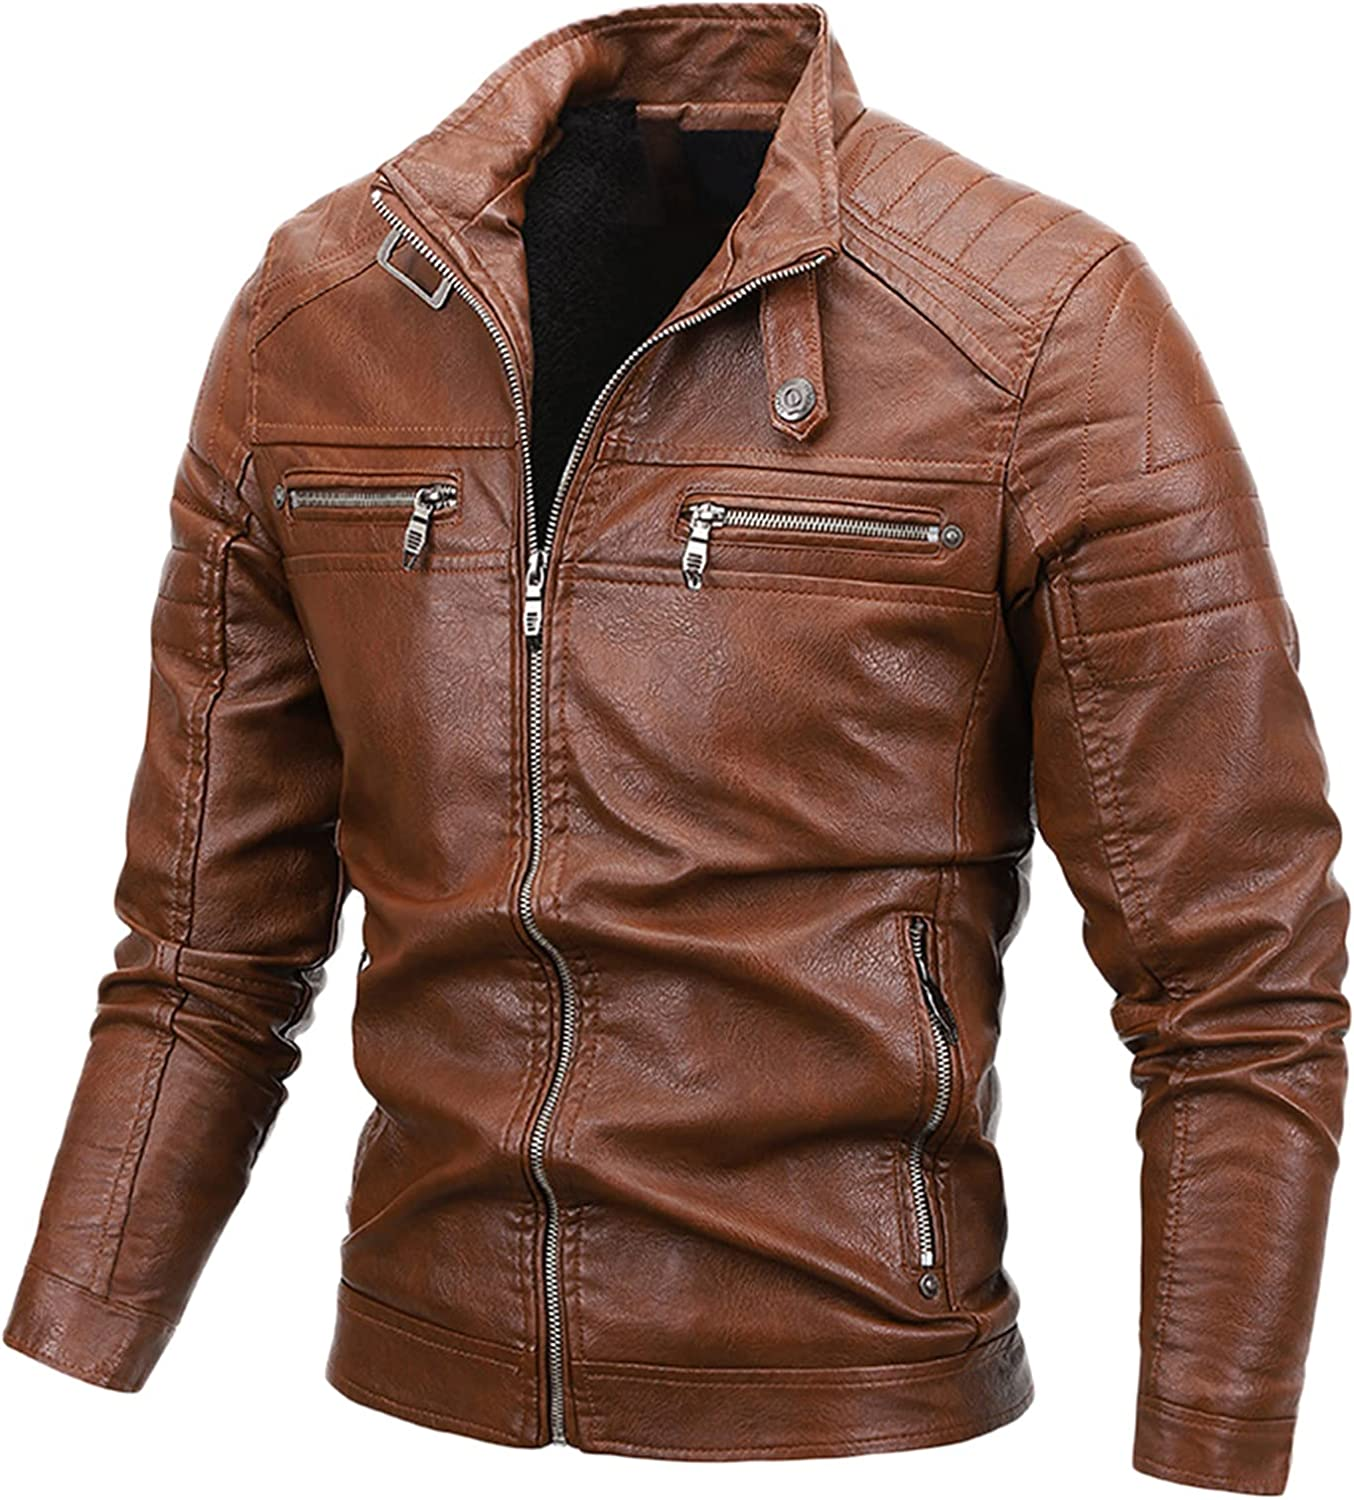 Men's Stand Collar PU Faux Leather Jacket 6 Pockets Motorcycle Bomber Fall Winter Jacket Outwear